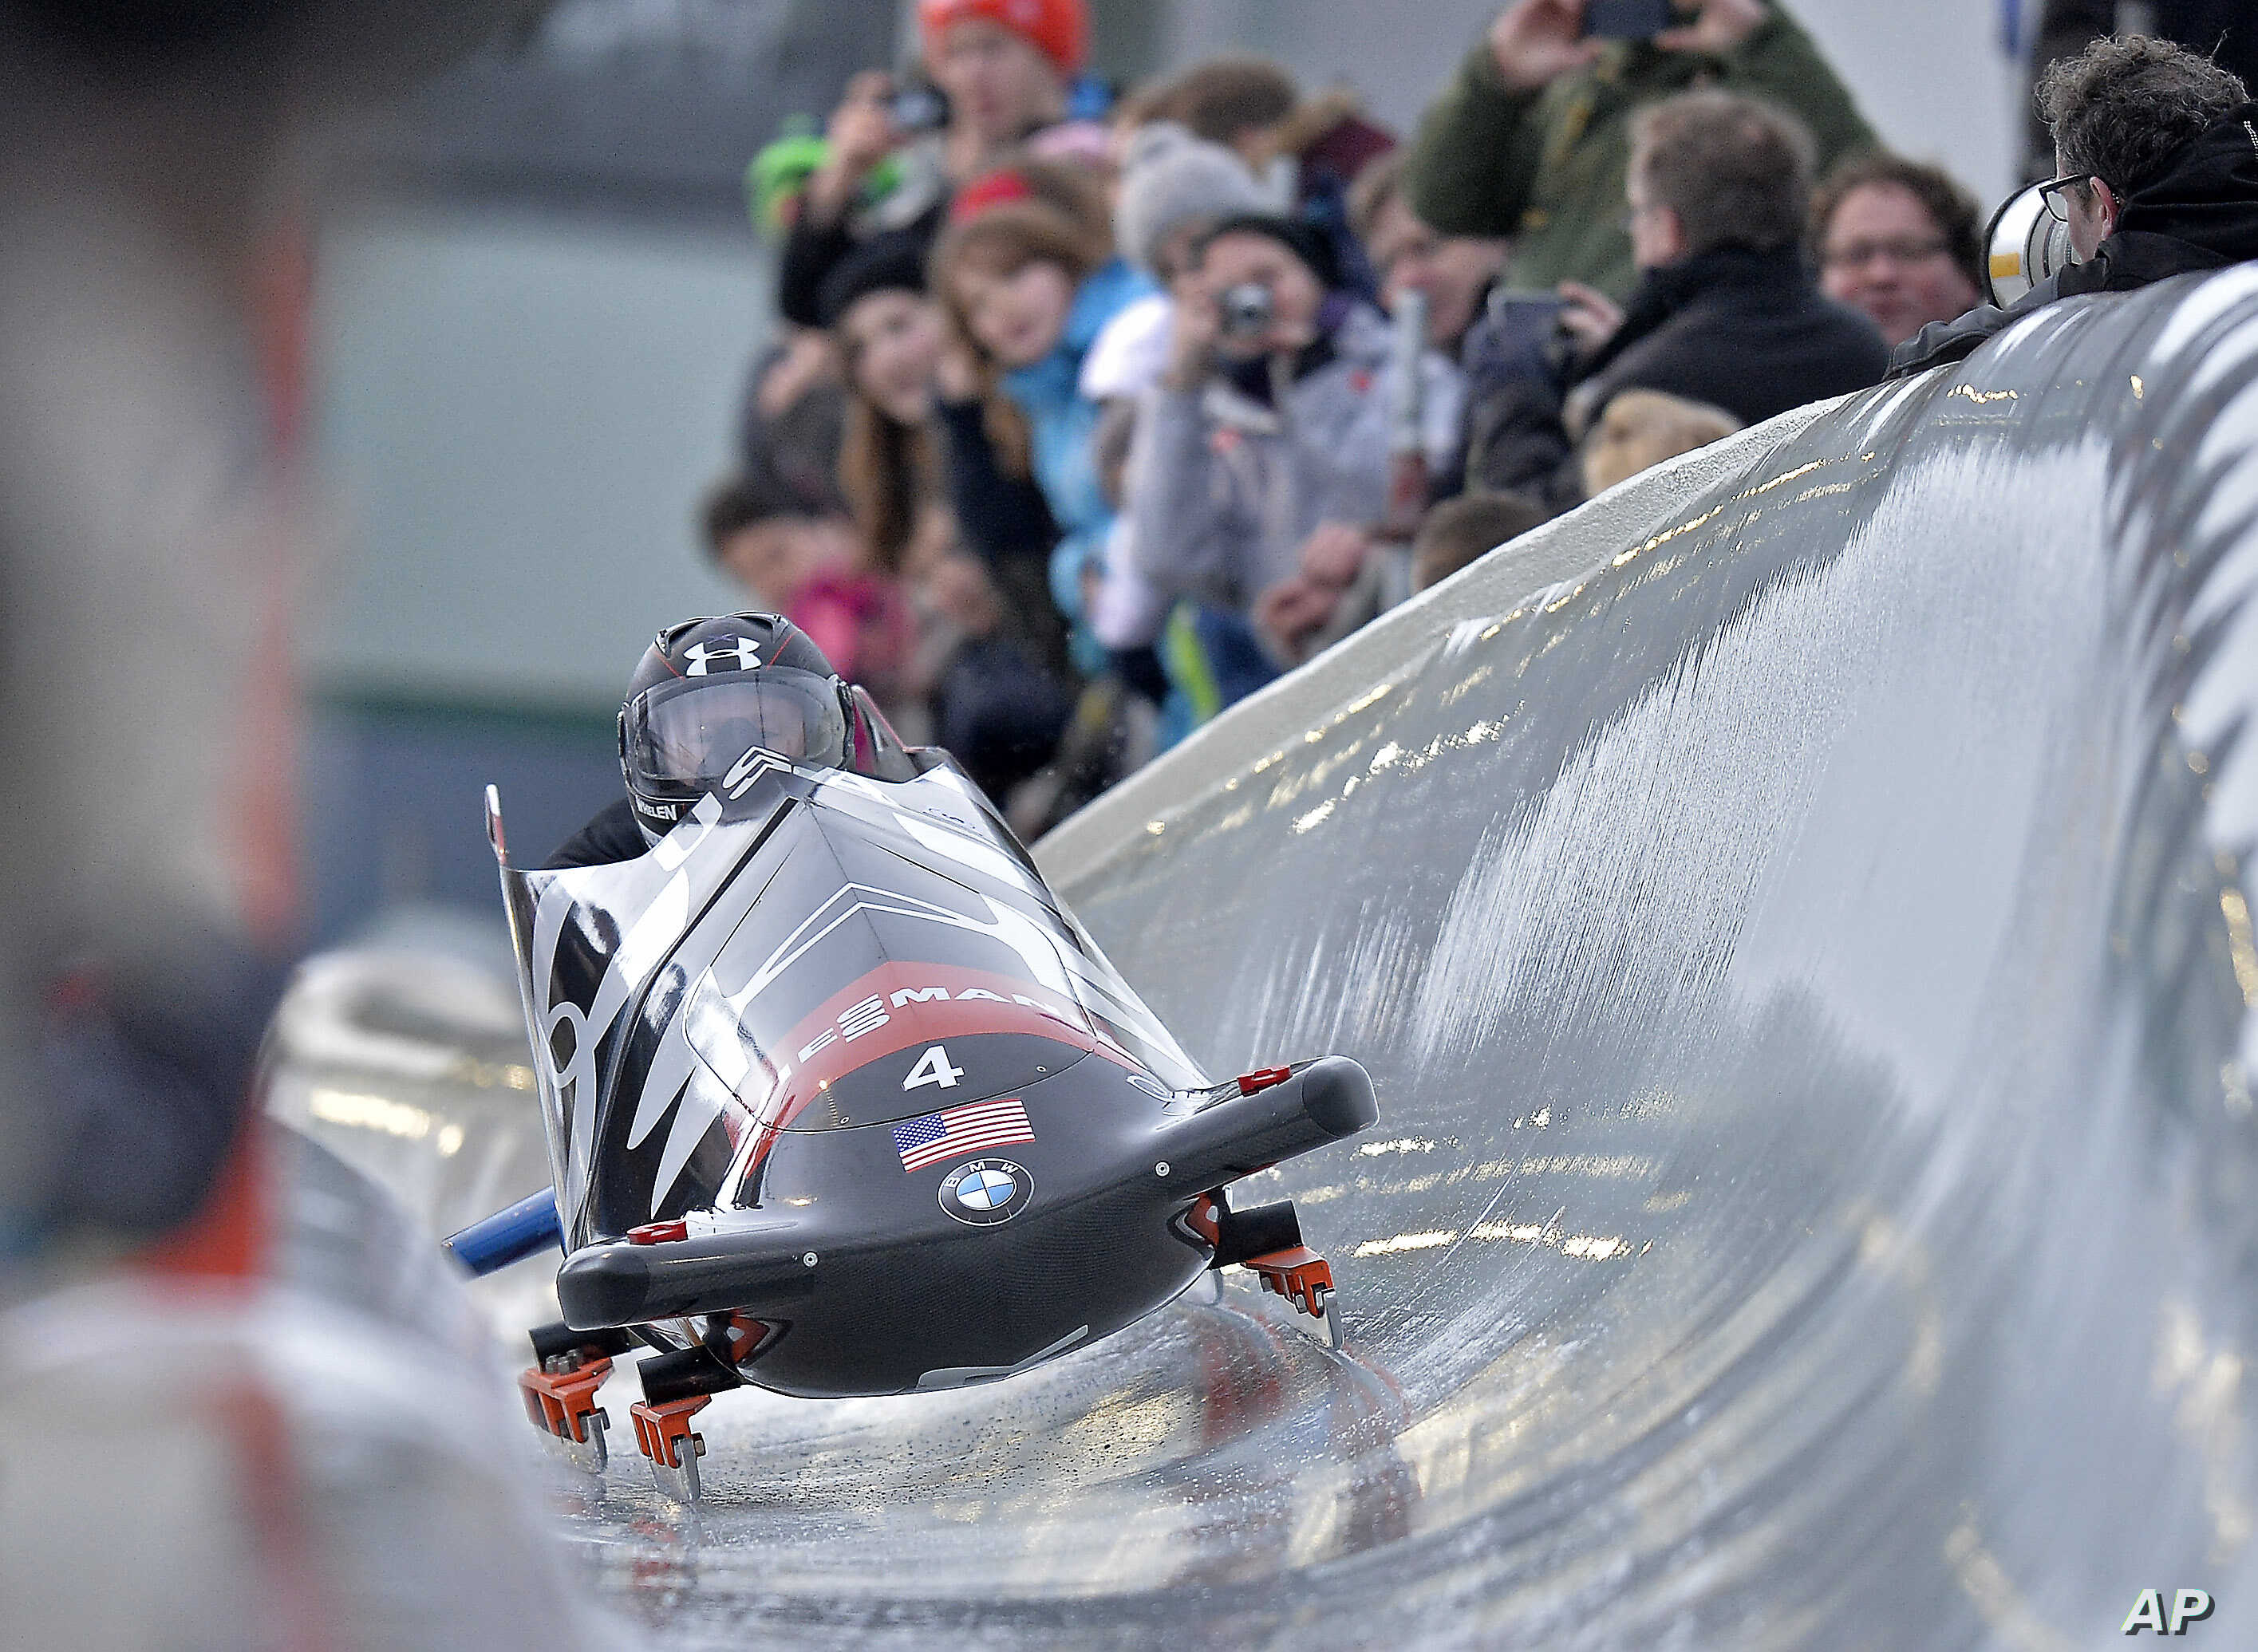 Steven Holcomb, front, and Steven Langton from the U.S. speed down the run during the two-man bobsled World Cup in Winterberg, Germany, Jan. 3, 2014.